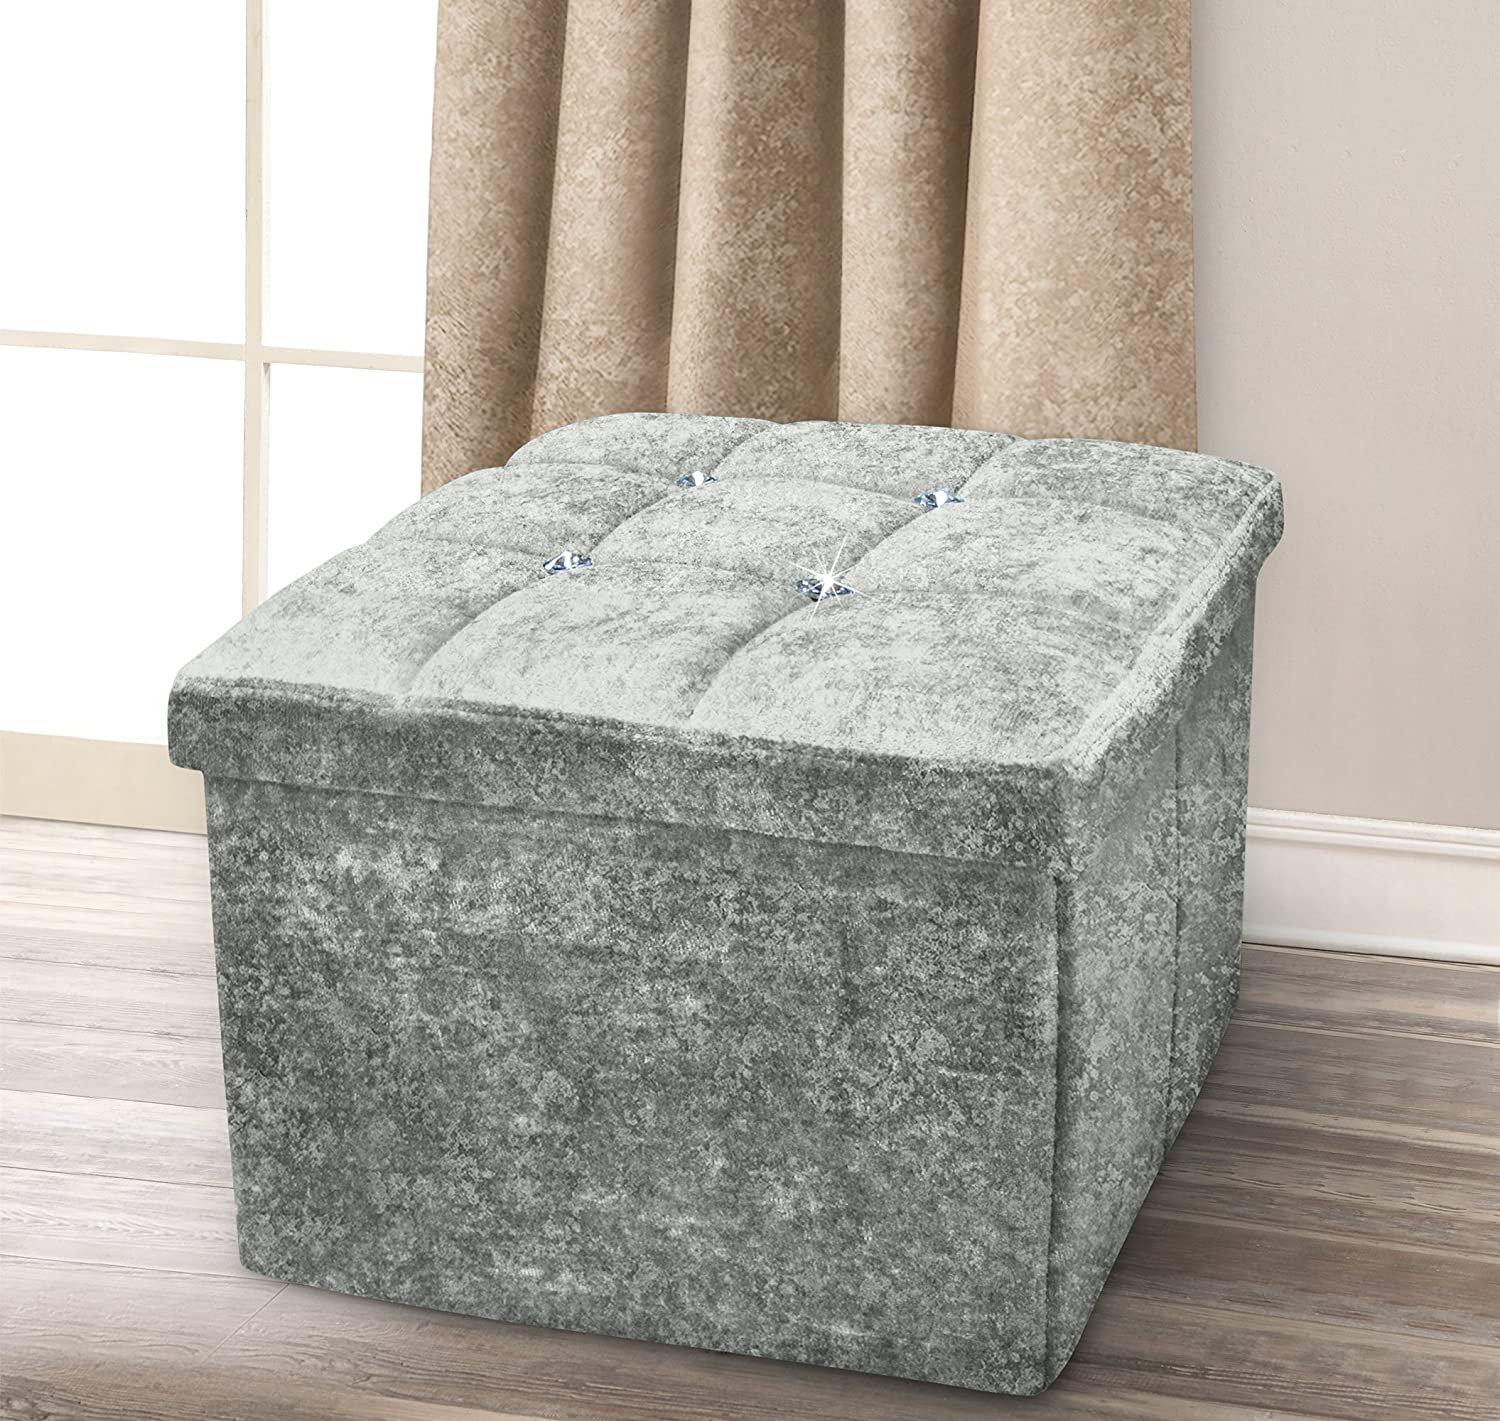 1 Seater Luxury Crushed Velvet Fabric with Diamantes Foldaway Ottoman Stool Blanket Box Bench 38cms x 38cms (Silver) MP